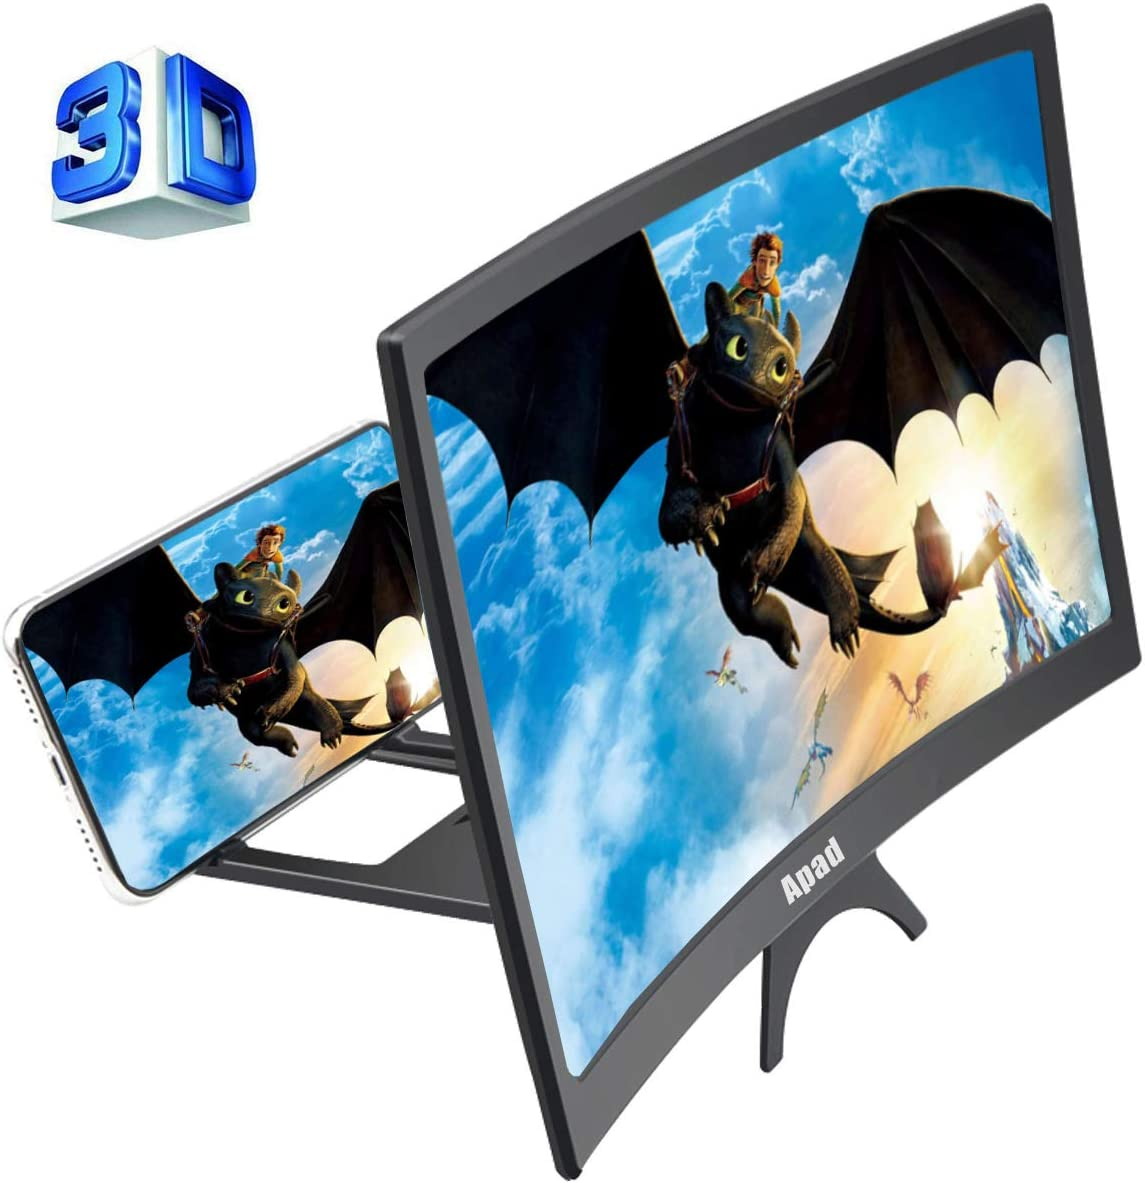 HD Amplifier Projector Magnifing Screen Enlarger for Movies Videos and Gaming with Foldable Stand Compatible with All Smartphones Whatyiu 12inch Curve Screen Magnifier for Cell Phone